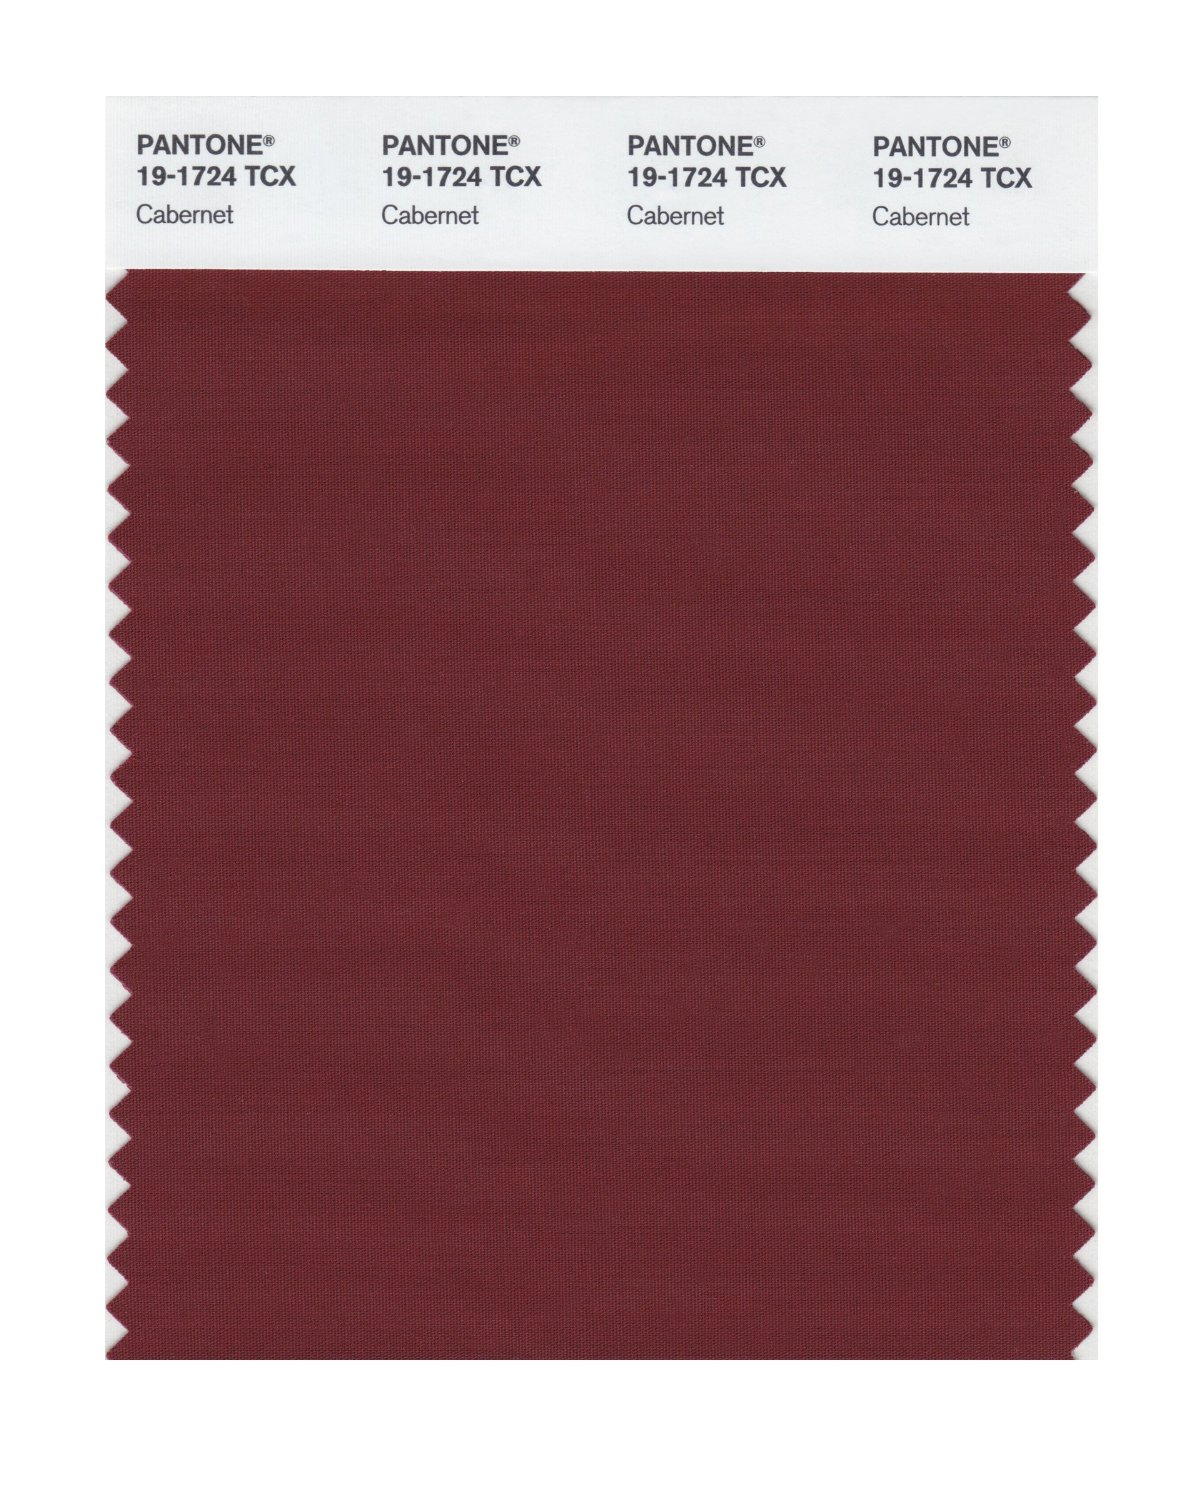 Pantone Smart Swatch 19-1724 Cabernet